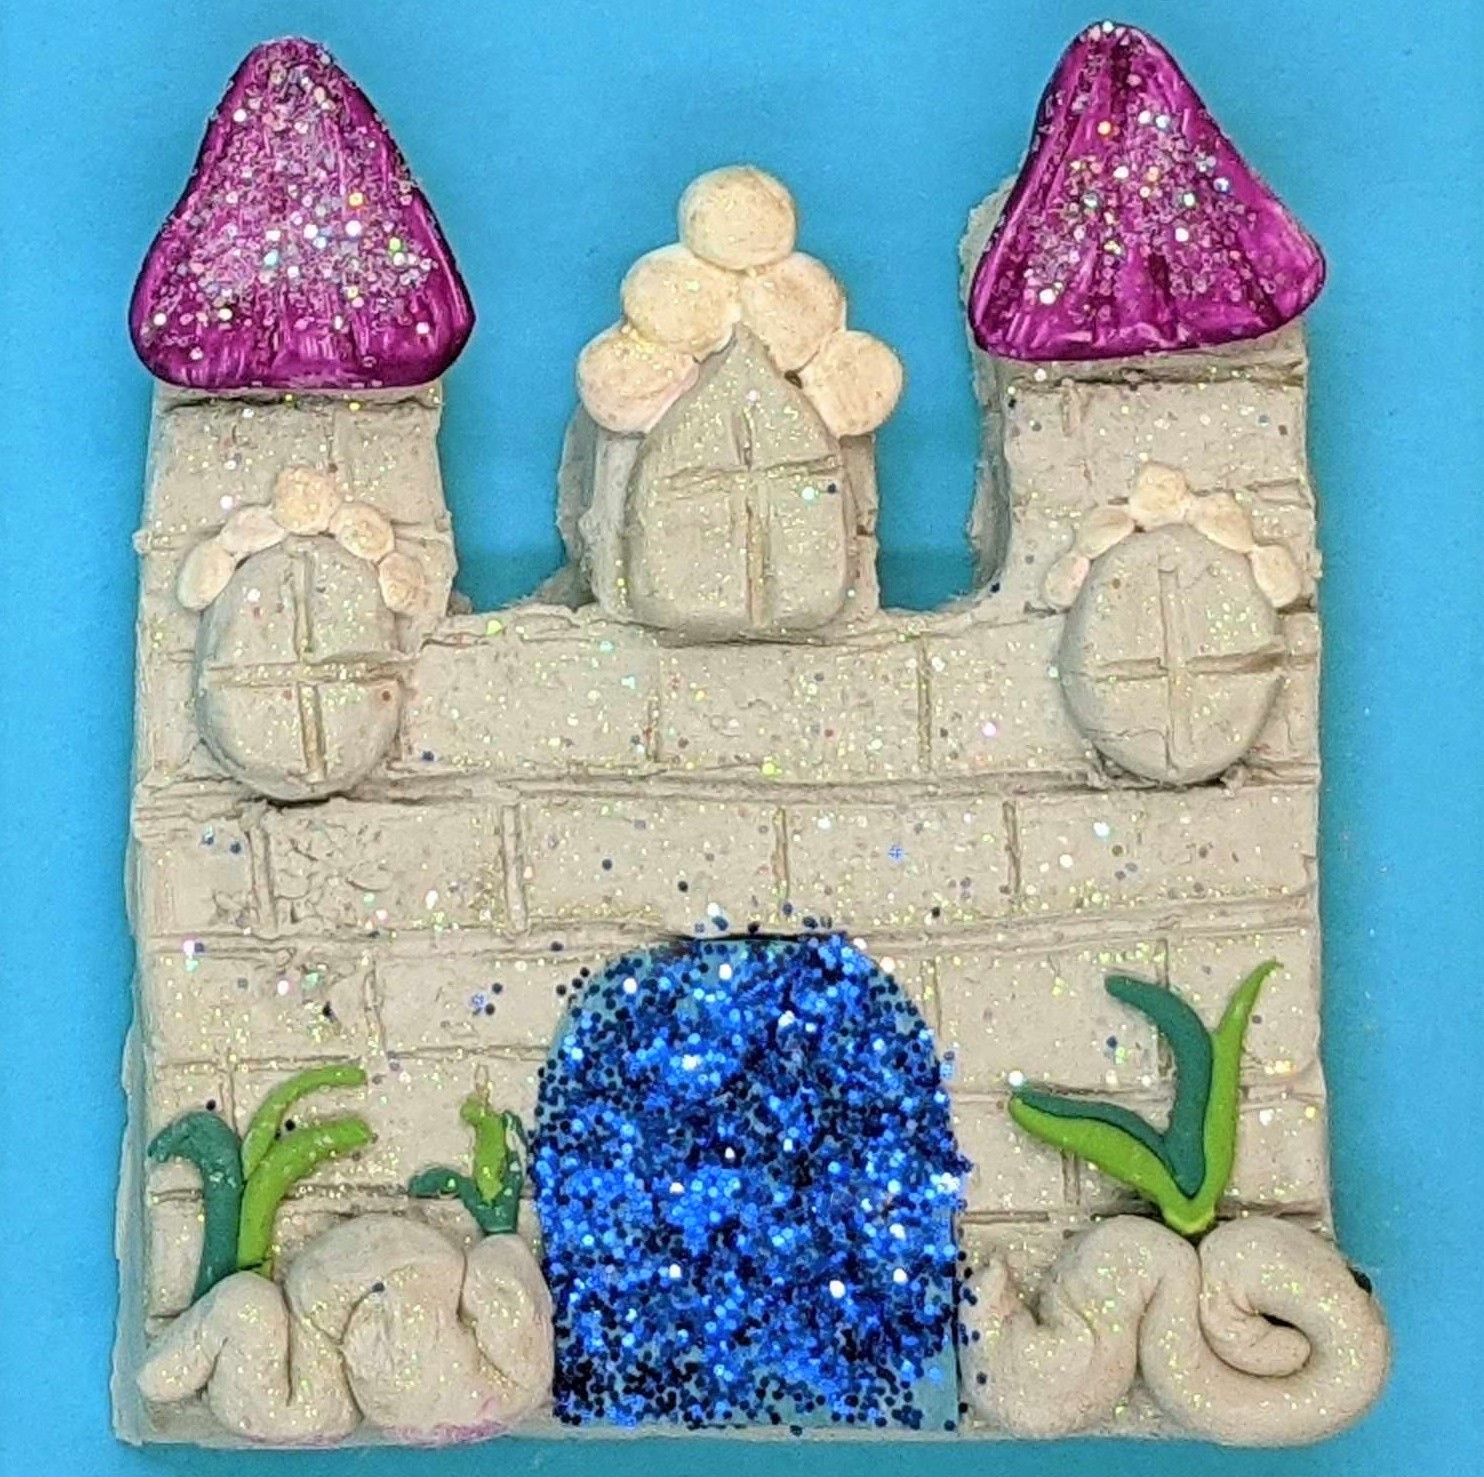 Kidcreate Studio, Sparkly Castle Art Project